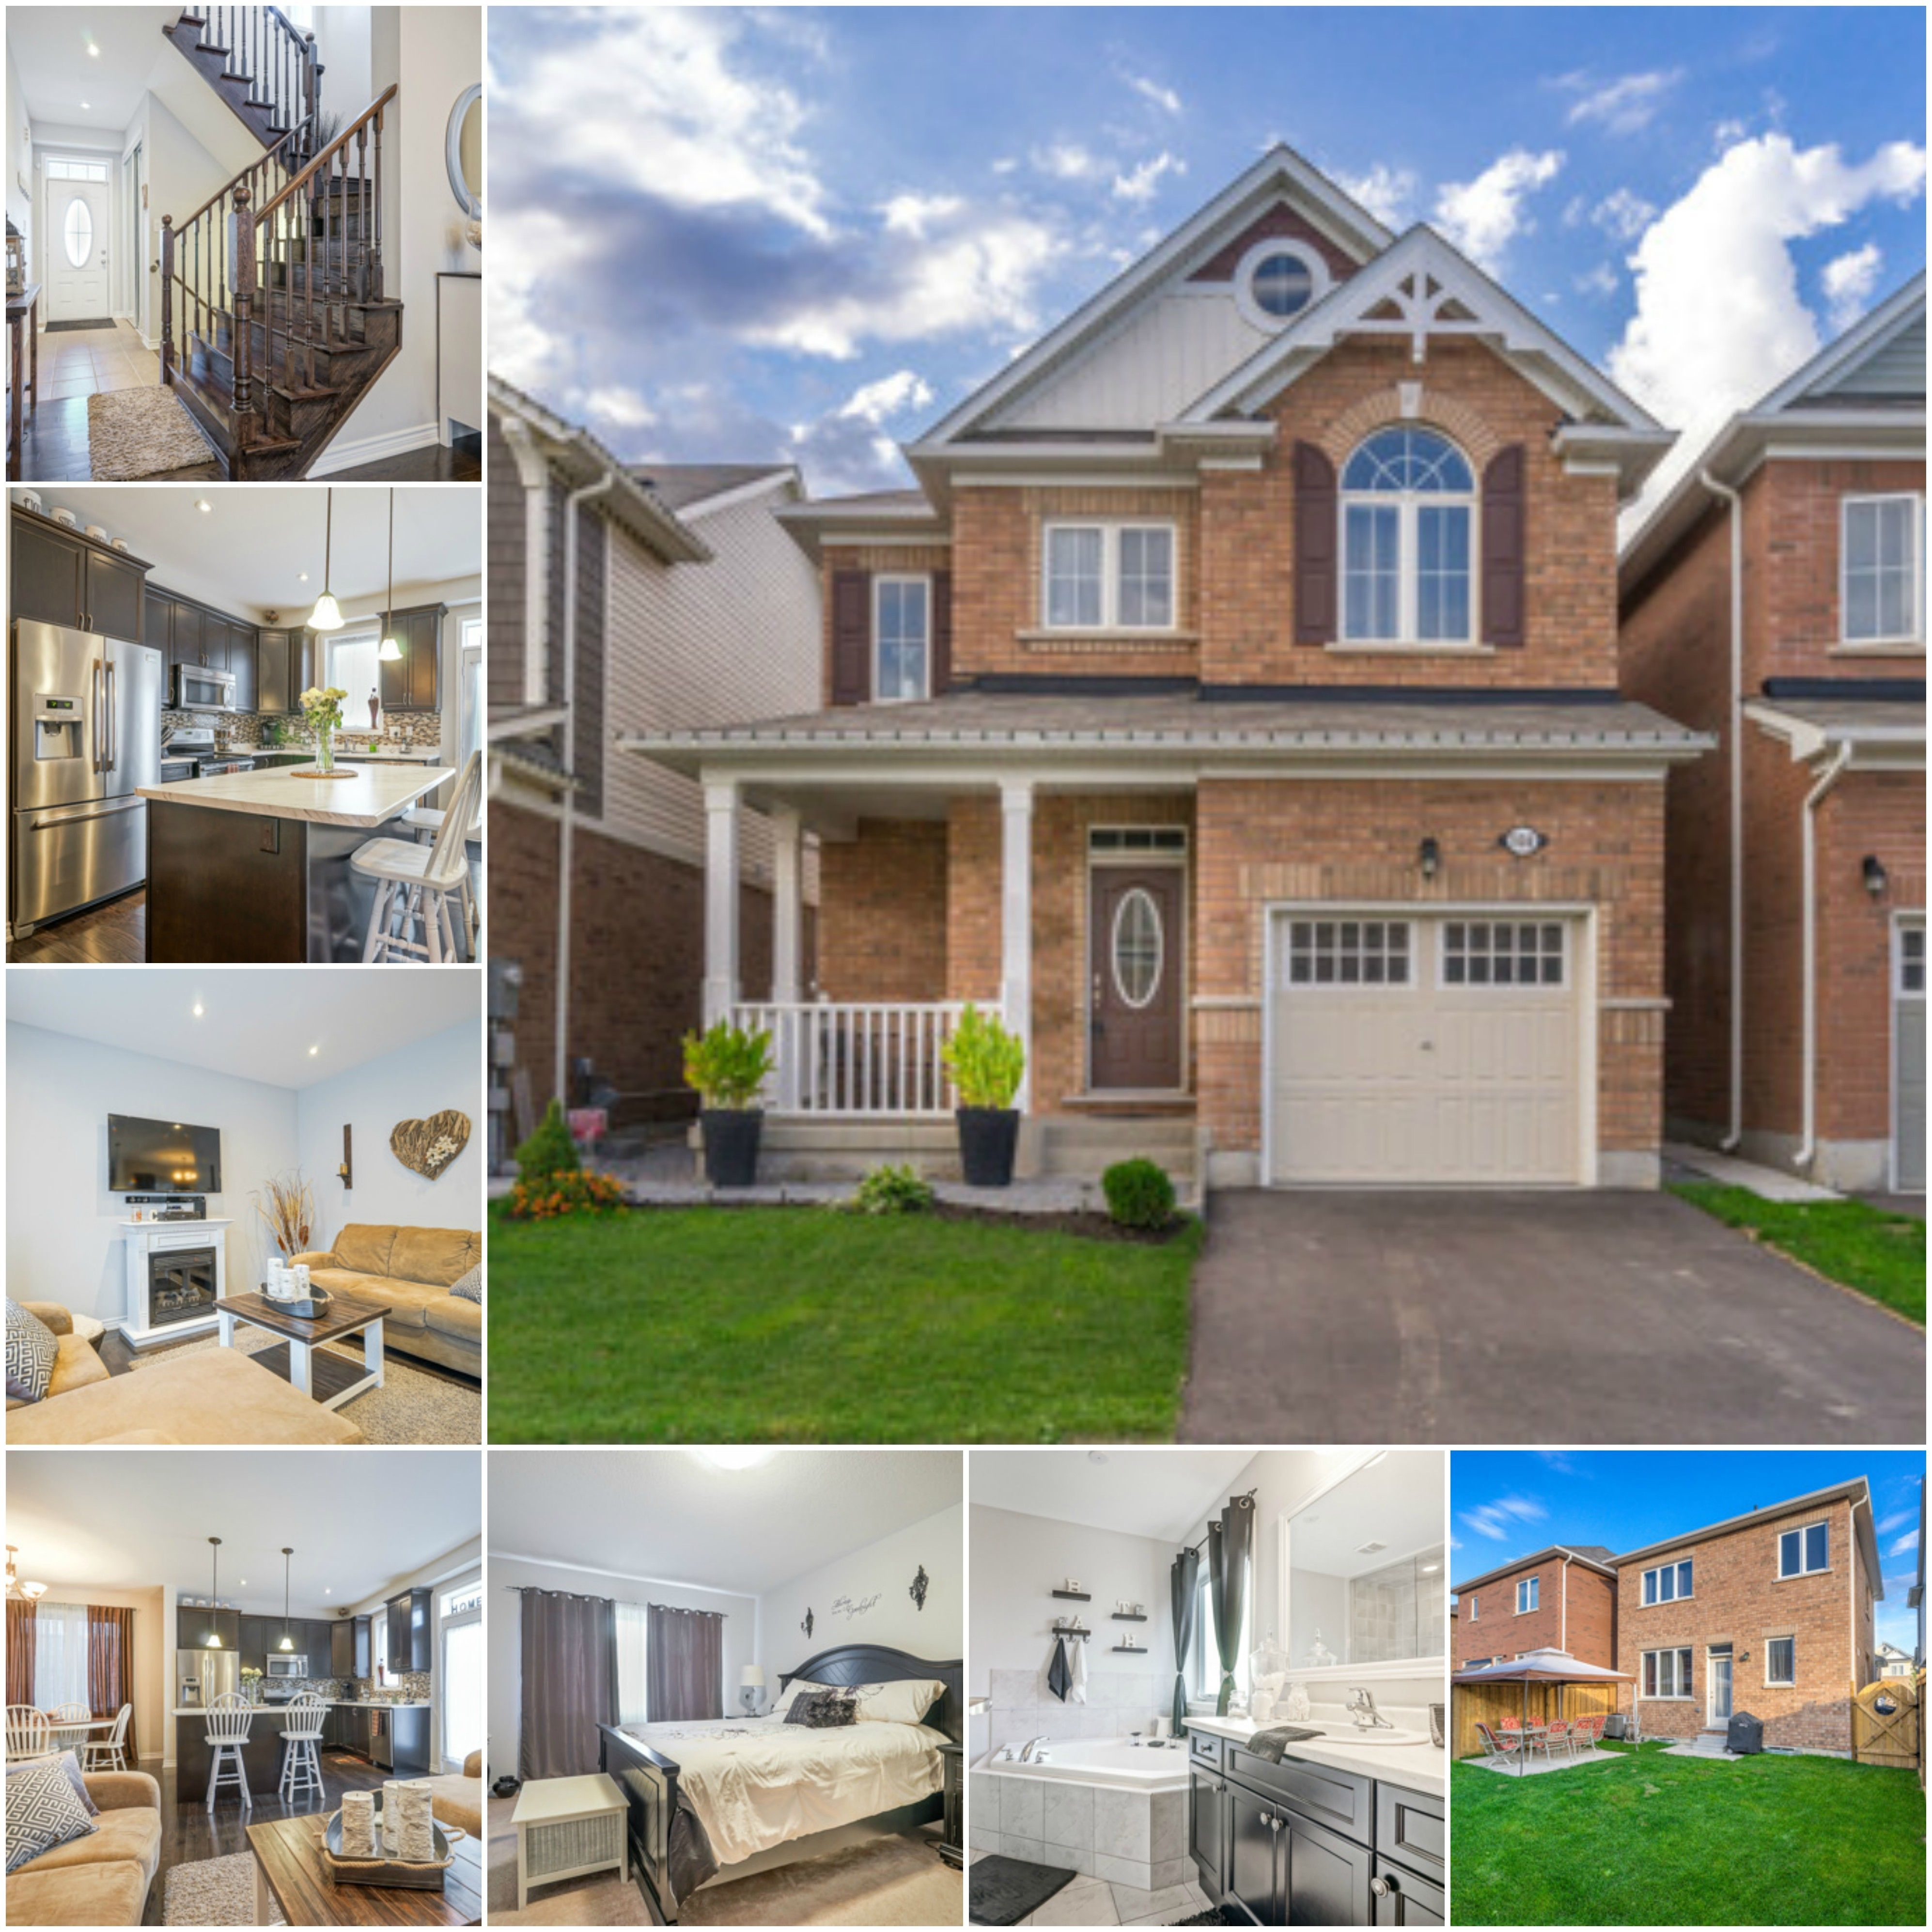 New Listing Book Your Showing Today 3 Br 3 Wr House Located In Brampton 649 900 Mls W3617733 Houseforsale Hotproperty Realty Real Estate House Styles